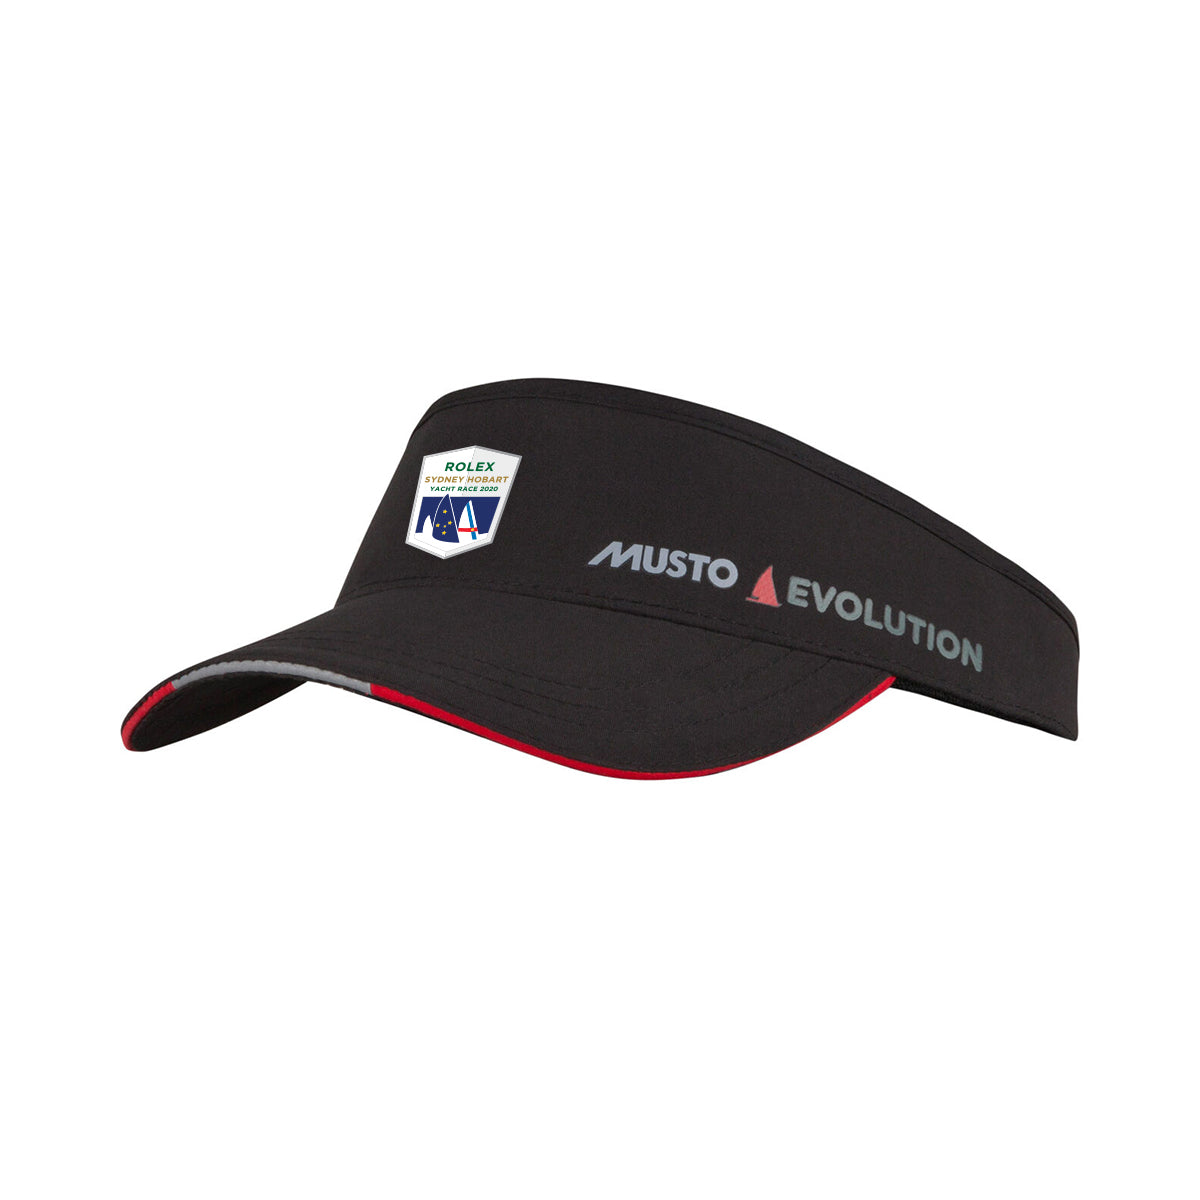 RSHYR20 - Evolution Race Visor